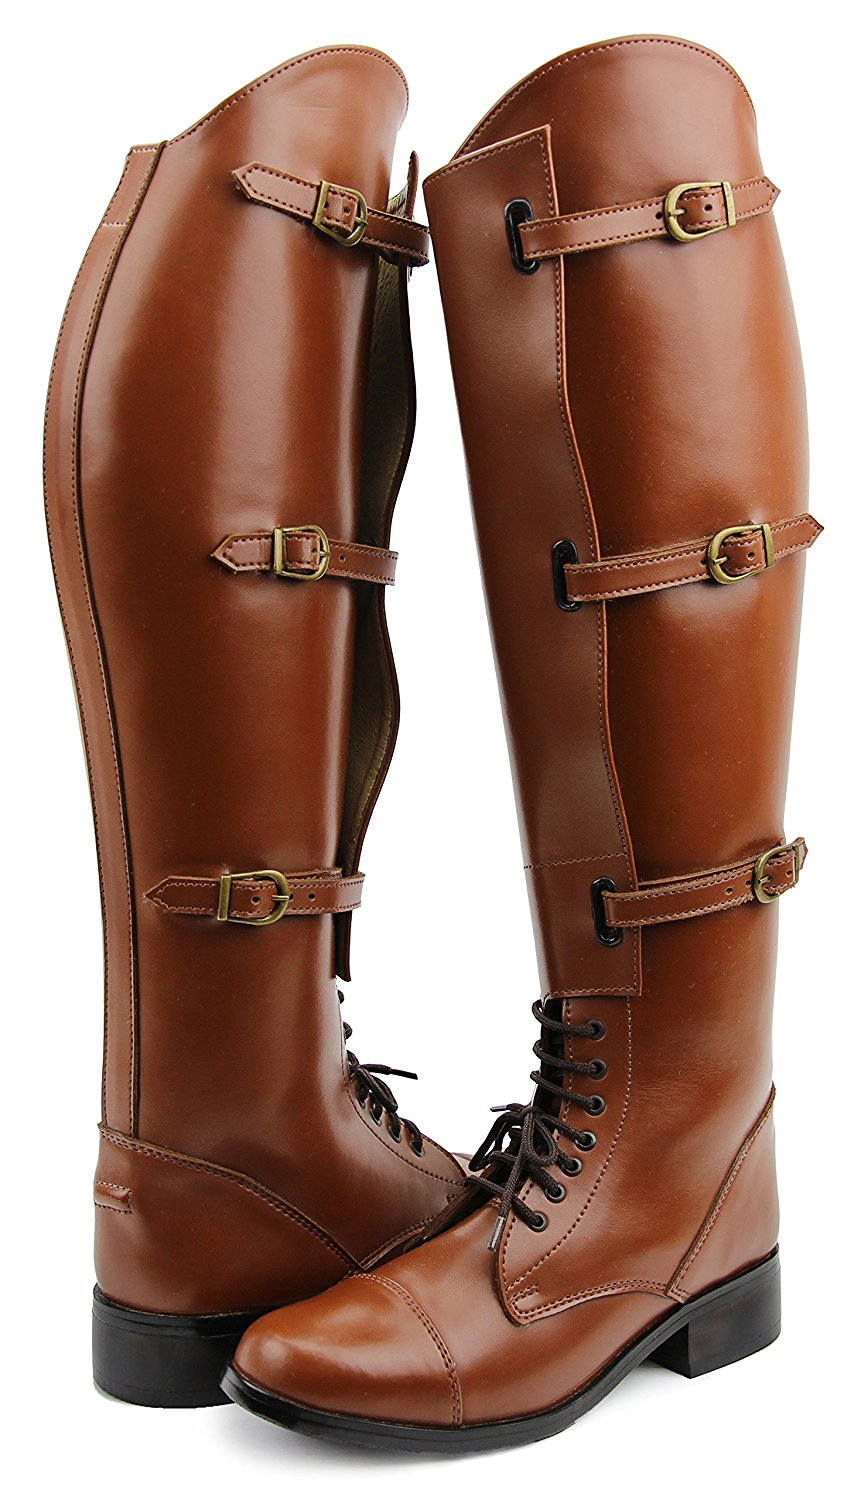 To acquire Mens stylish riding boots picture trends